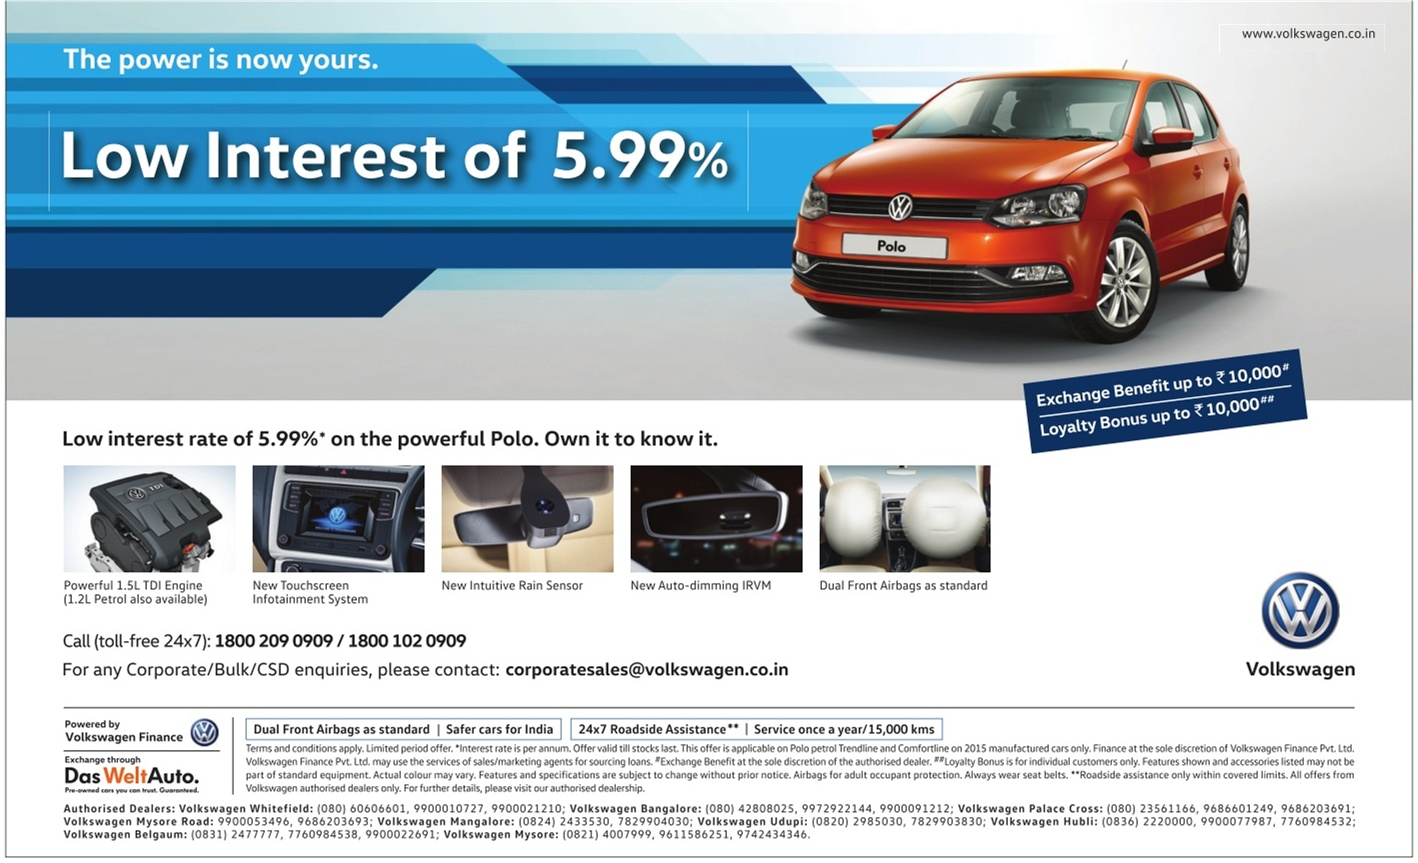 Volkswagen Polo with lowest interest rate of 5.99% | April 2016 discount offers